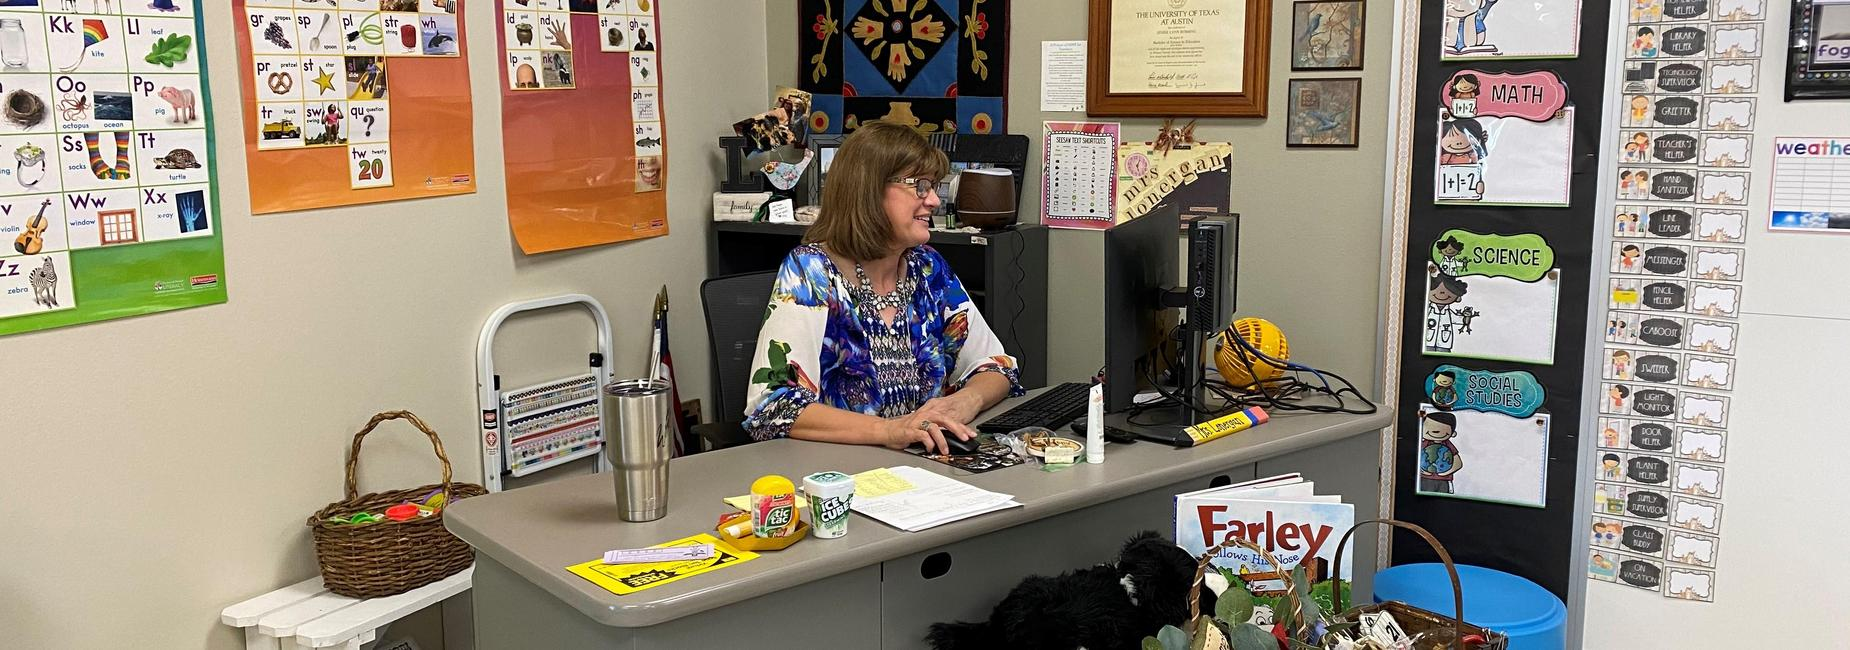 woman smiling while working at her desk on the computer